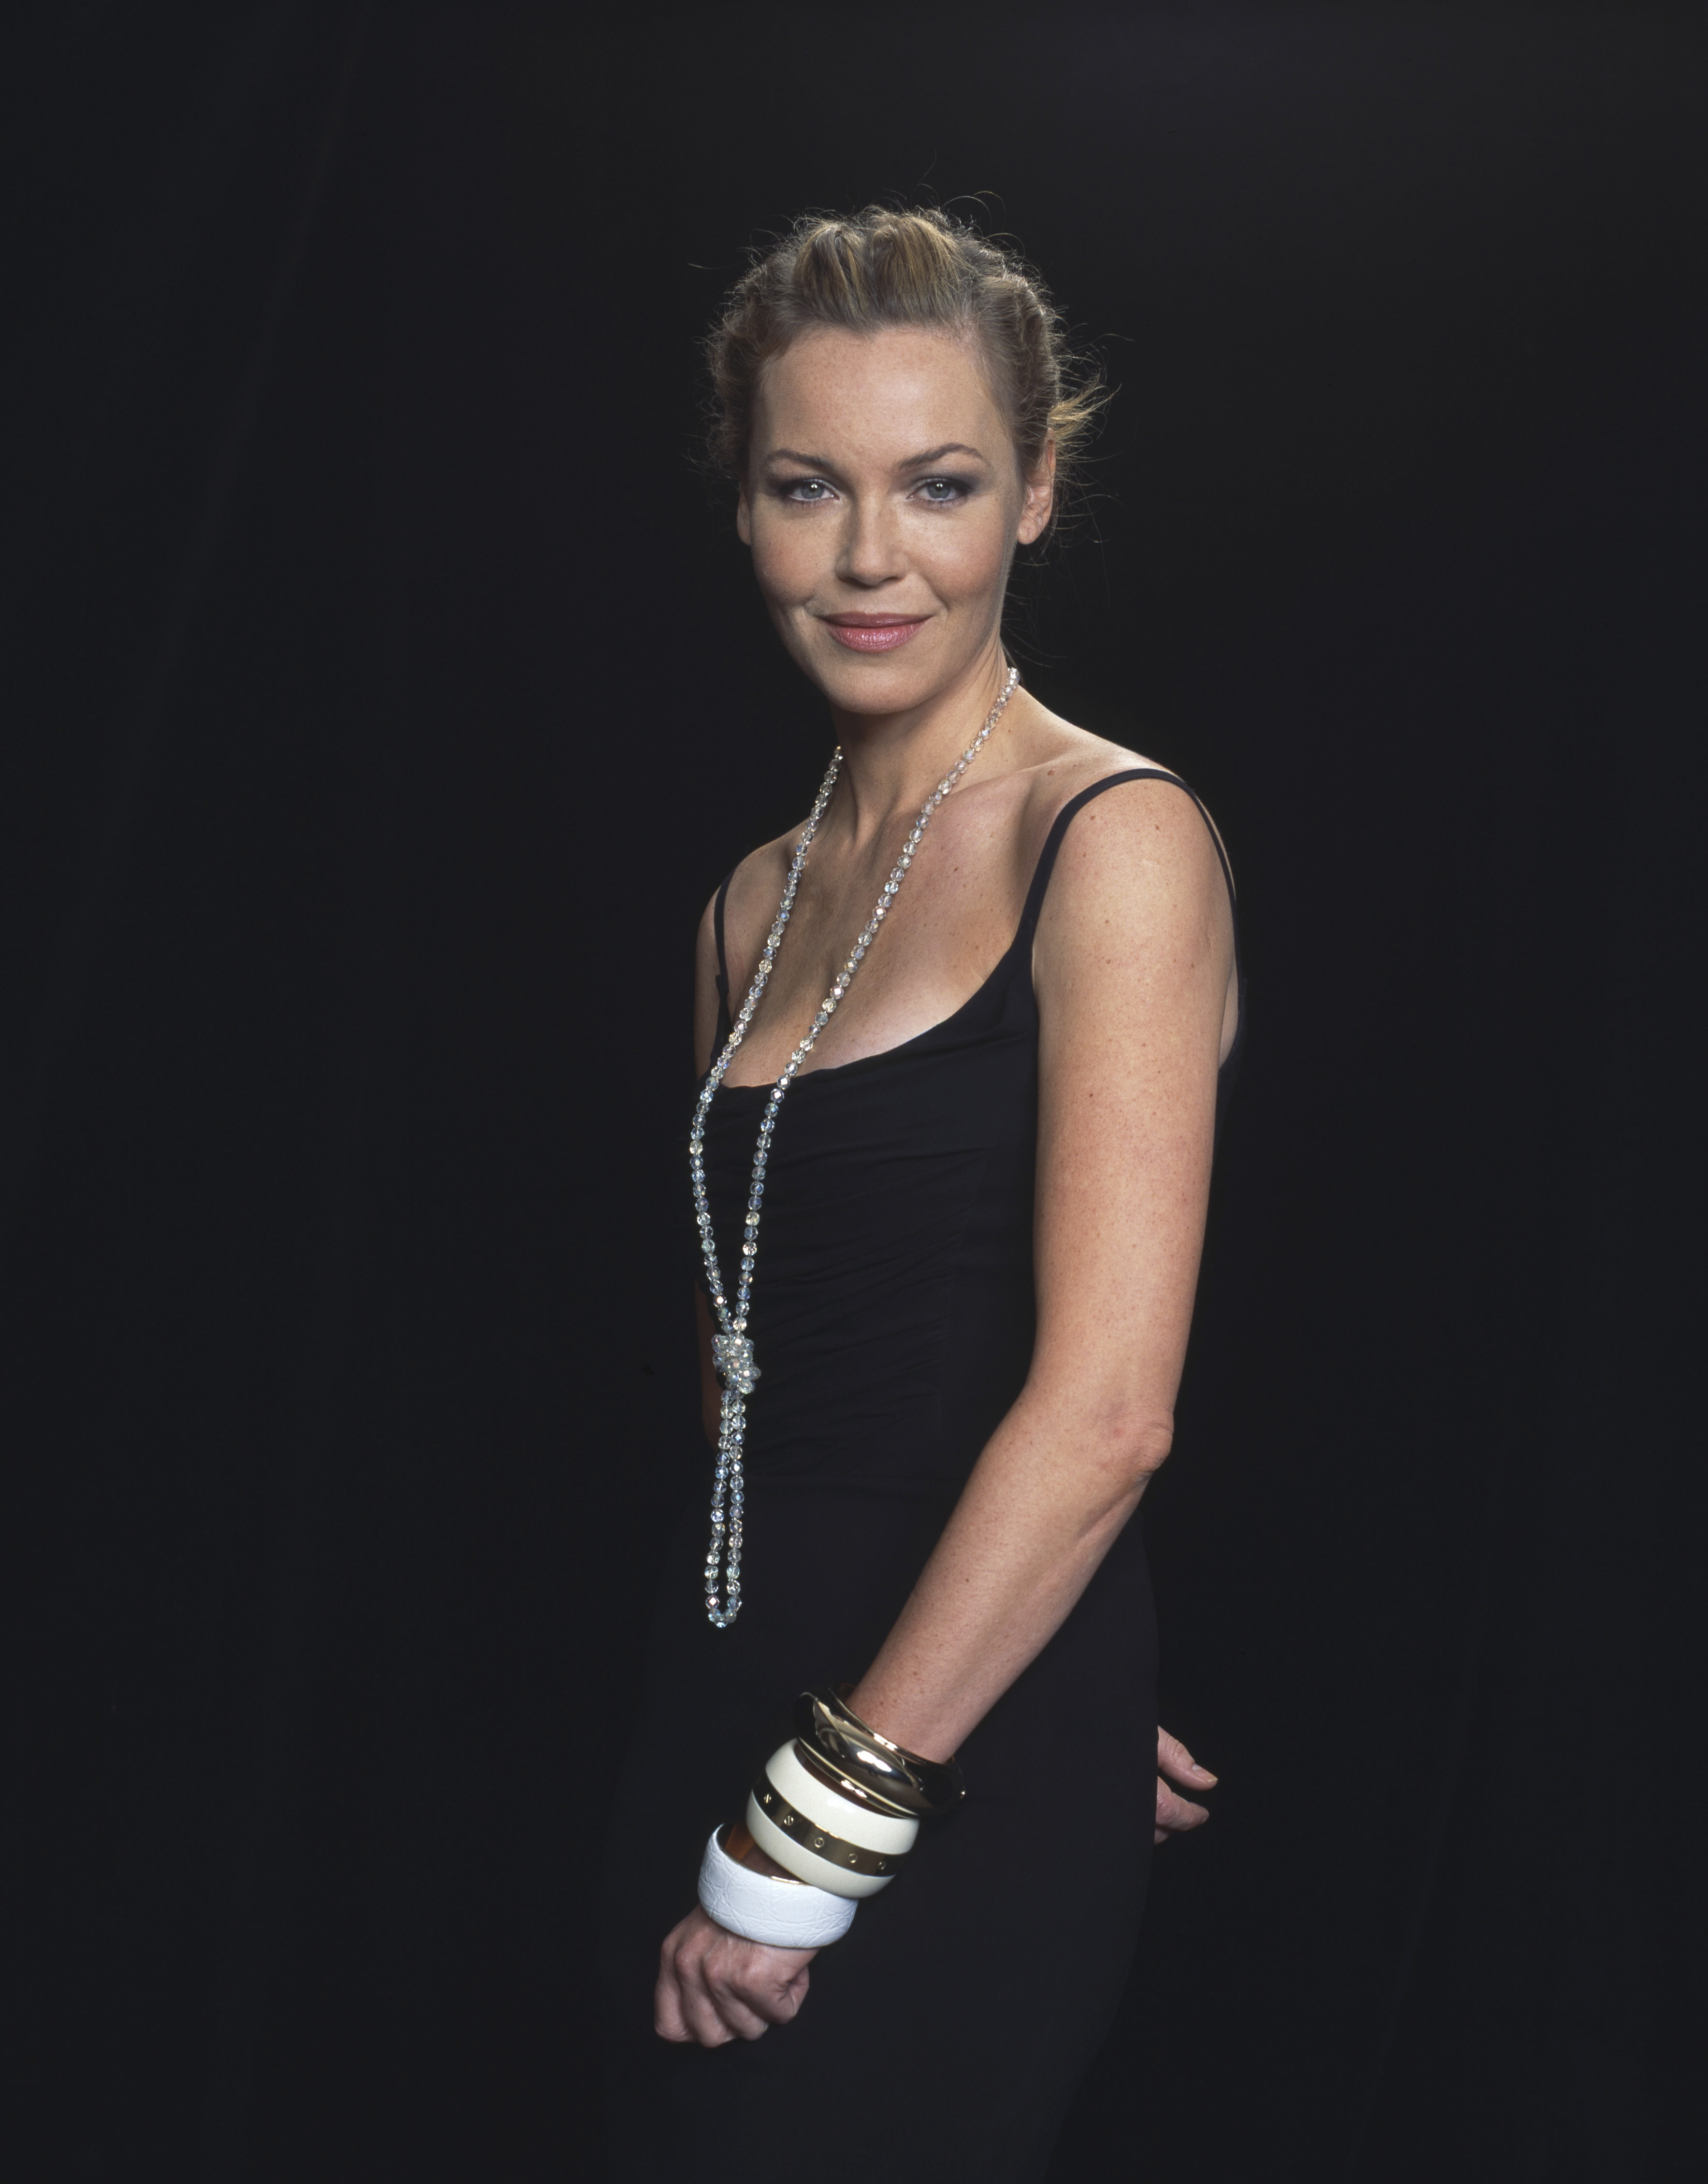 Connie Nielsen photo gallery - 49 high quality pics of ... Angelina Jolie Wikipedia